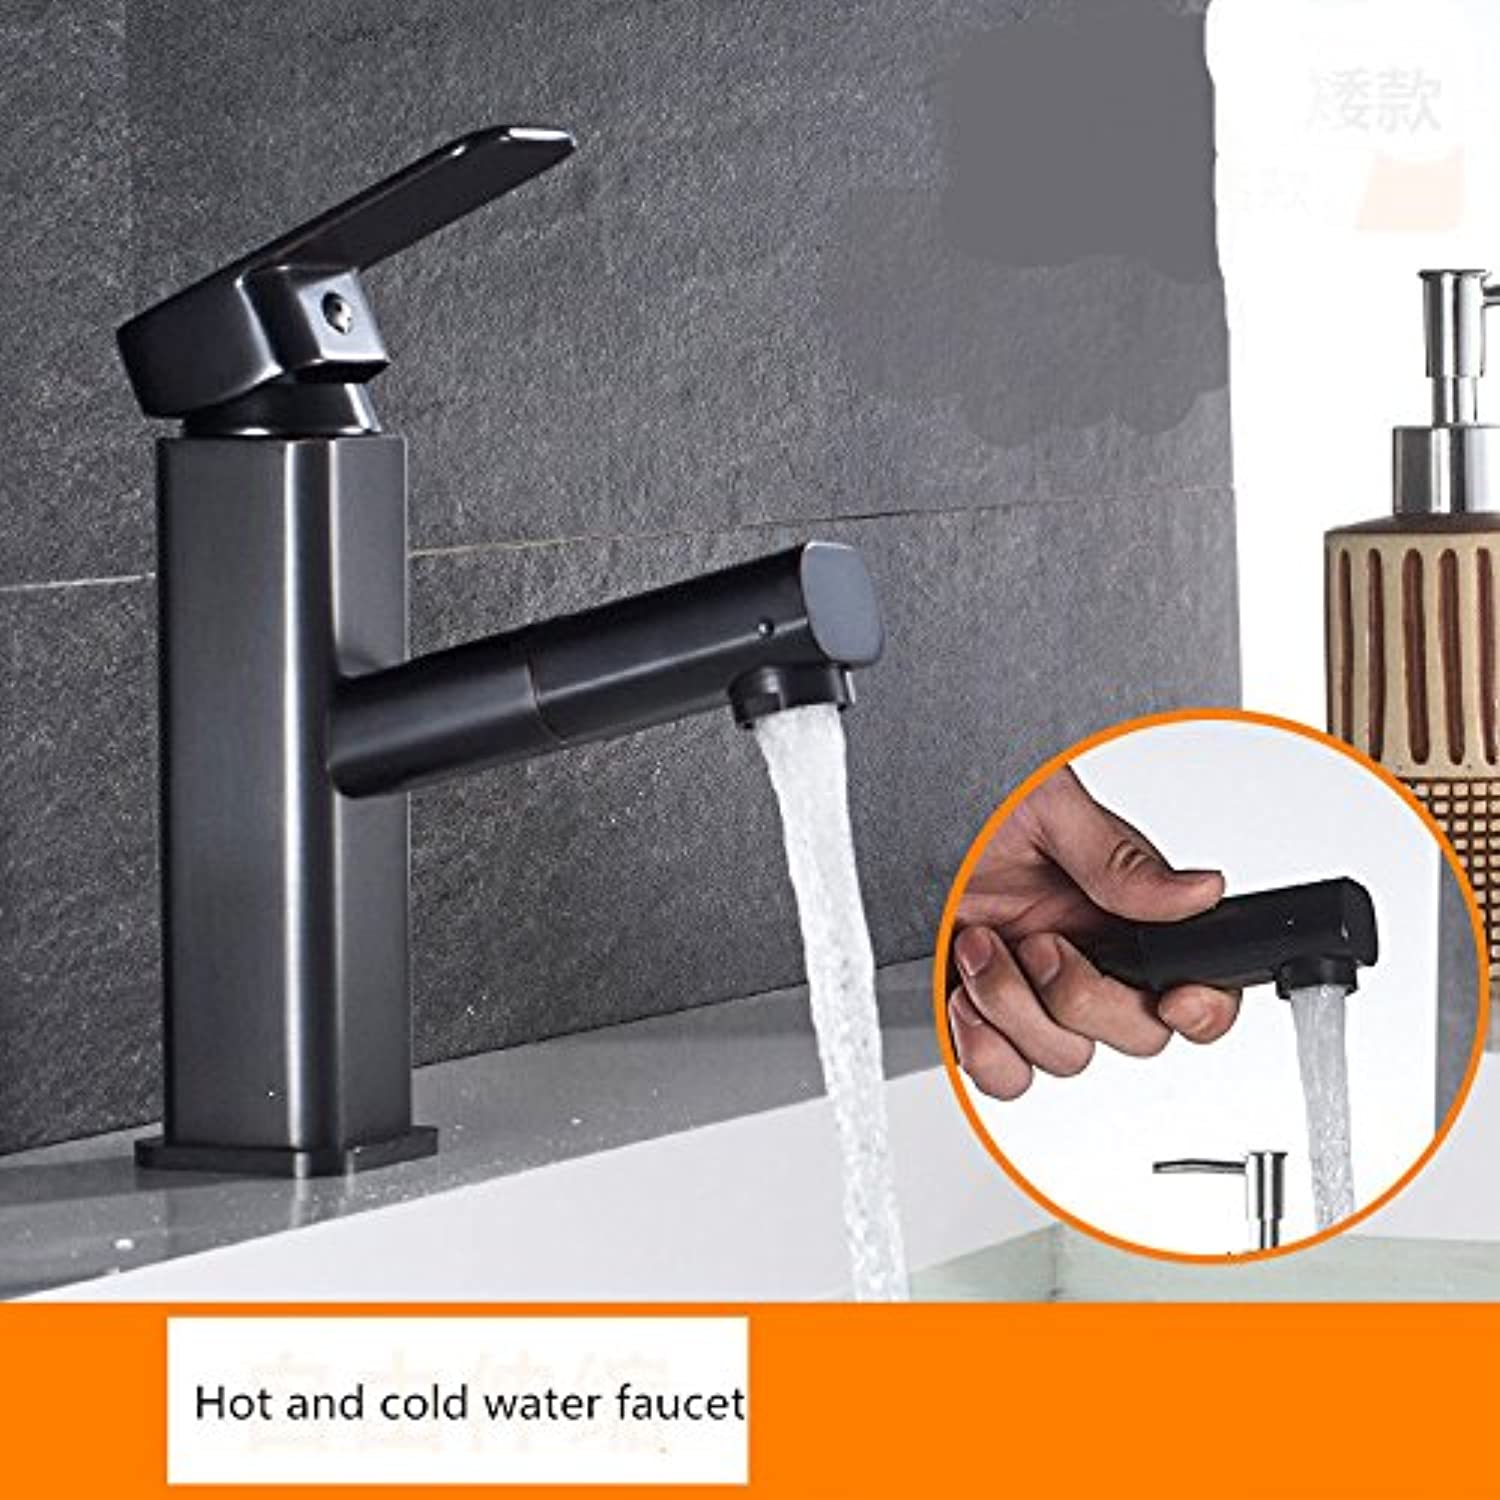 Hlluya Professional Sink Mixer Tap Kitchen Faucet All copper pull faucet basin mixer with high cold water taps on the desk antique black basin mixer water faucet, D.